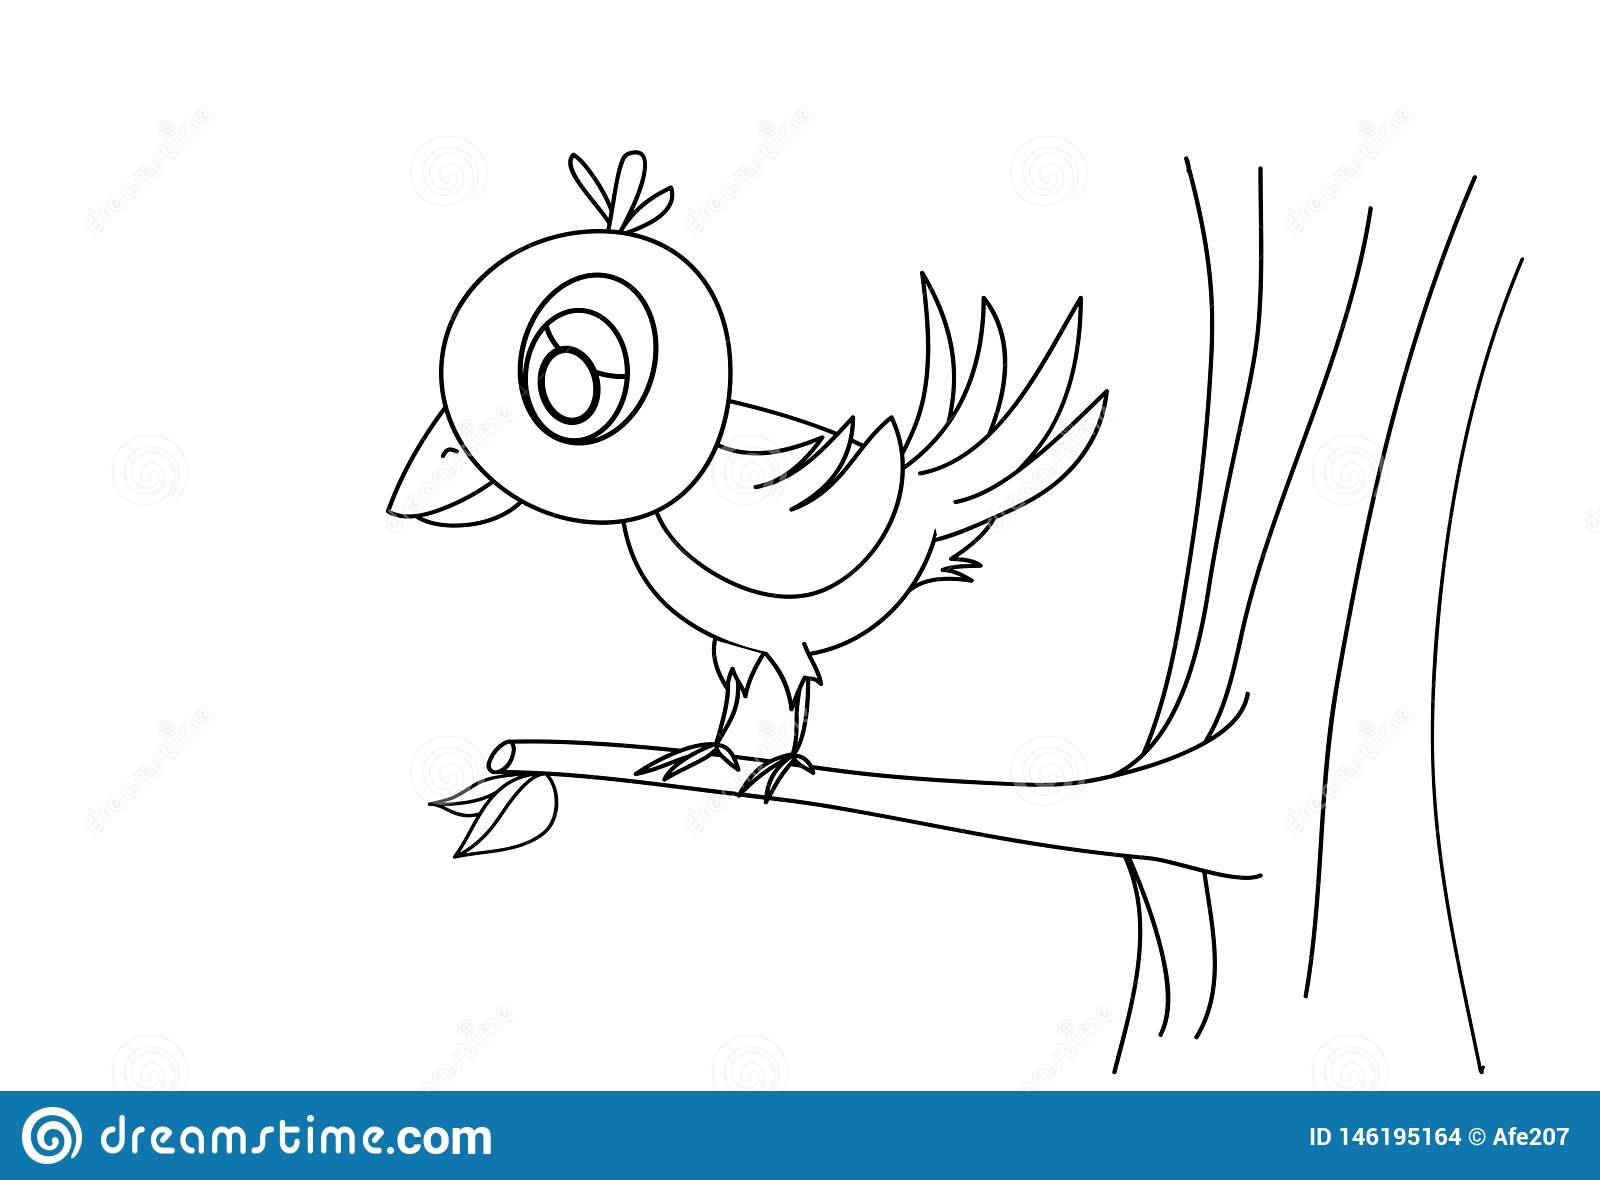 Line Drawing Bird On Tree For Kids Painting Art Study Stock Vector Illustration Of Graphic Beauty 146195164